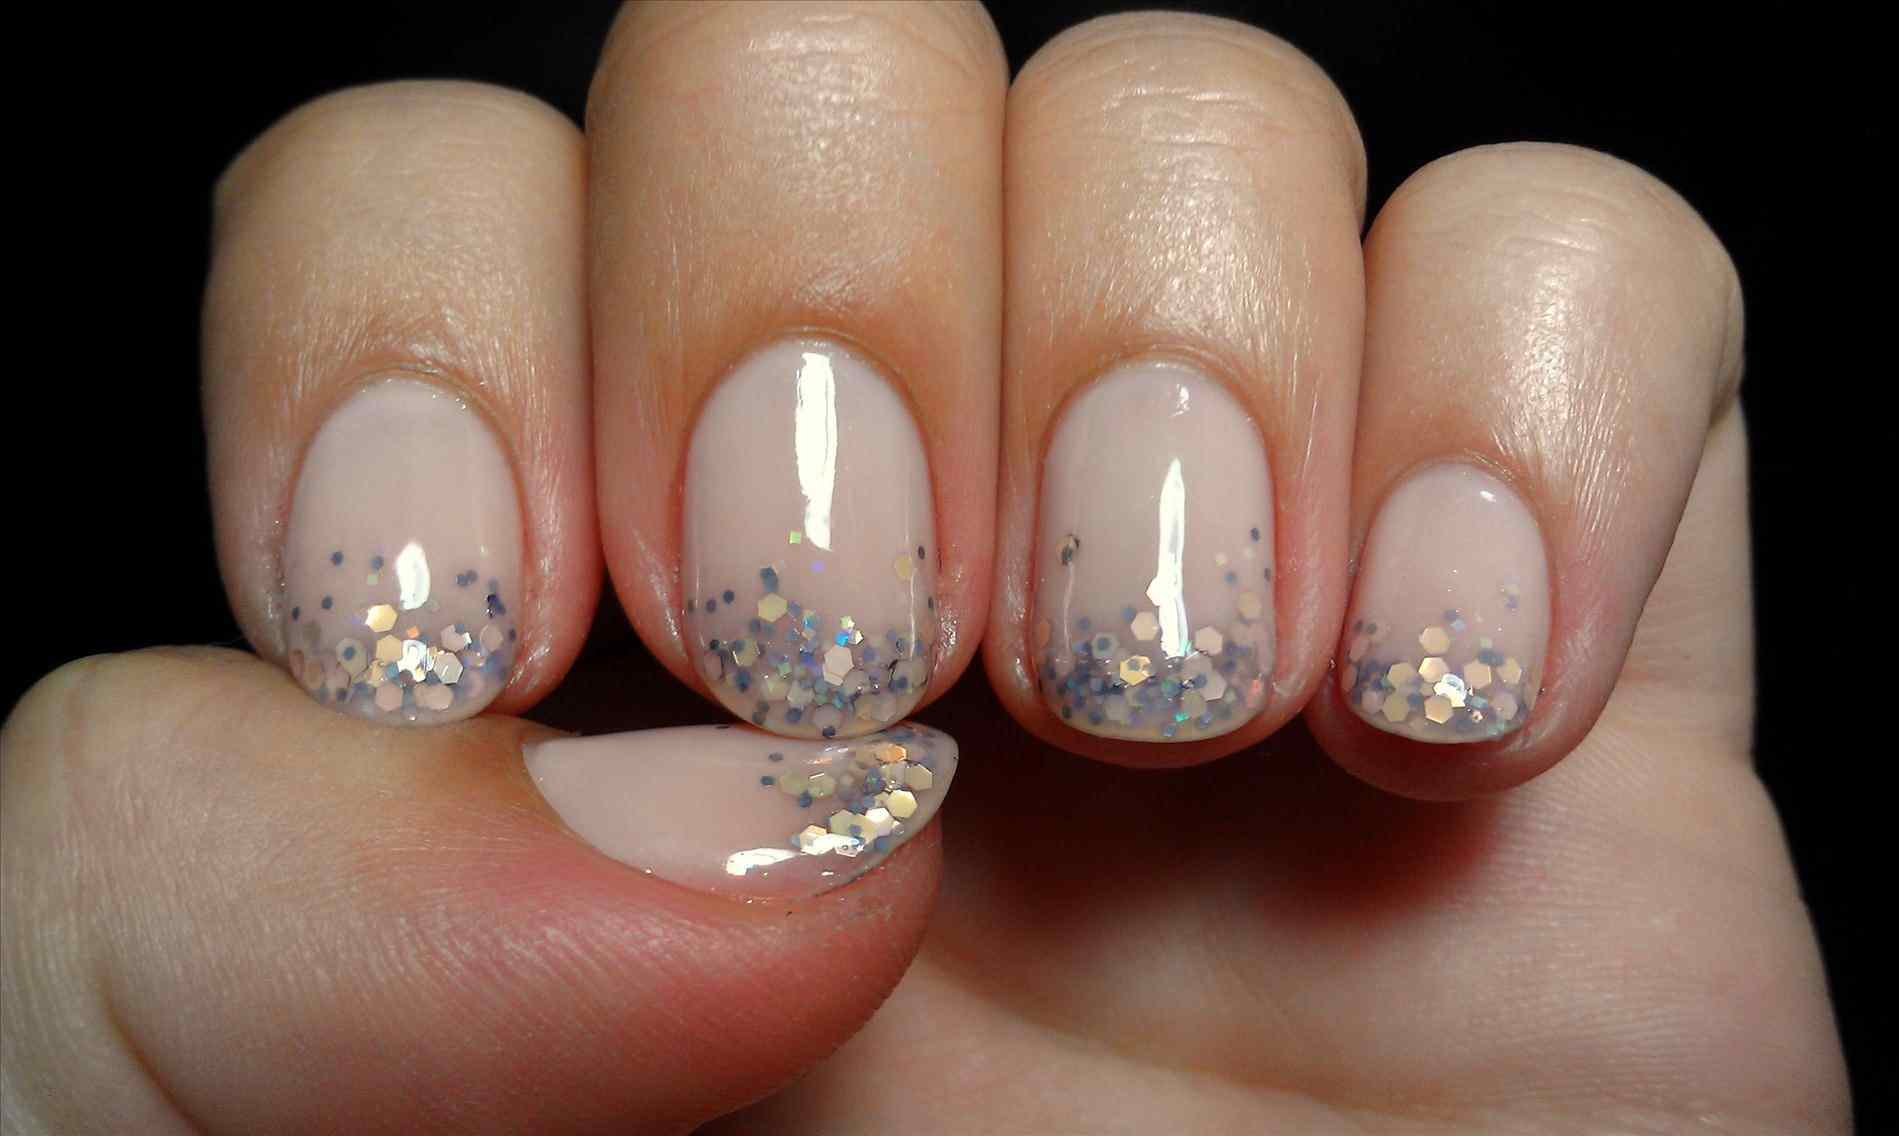 And Polish Up Cnd Shellac Nail Art Brush French Manicure With Gold Glitter Christmas